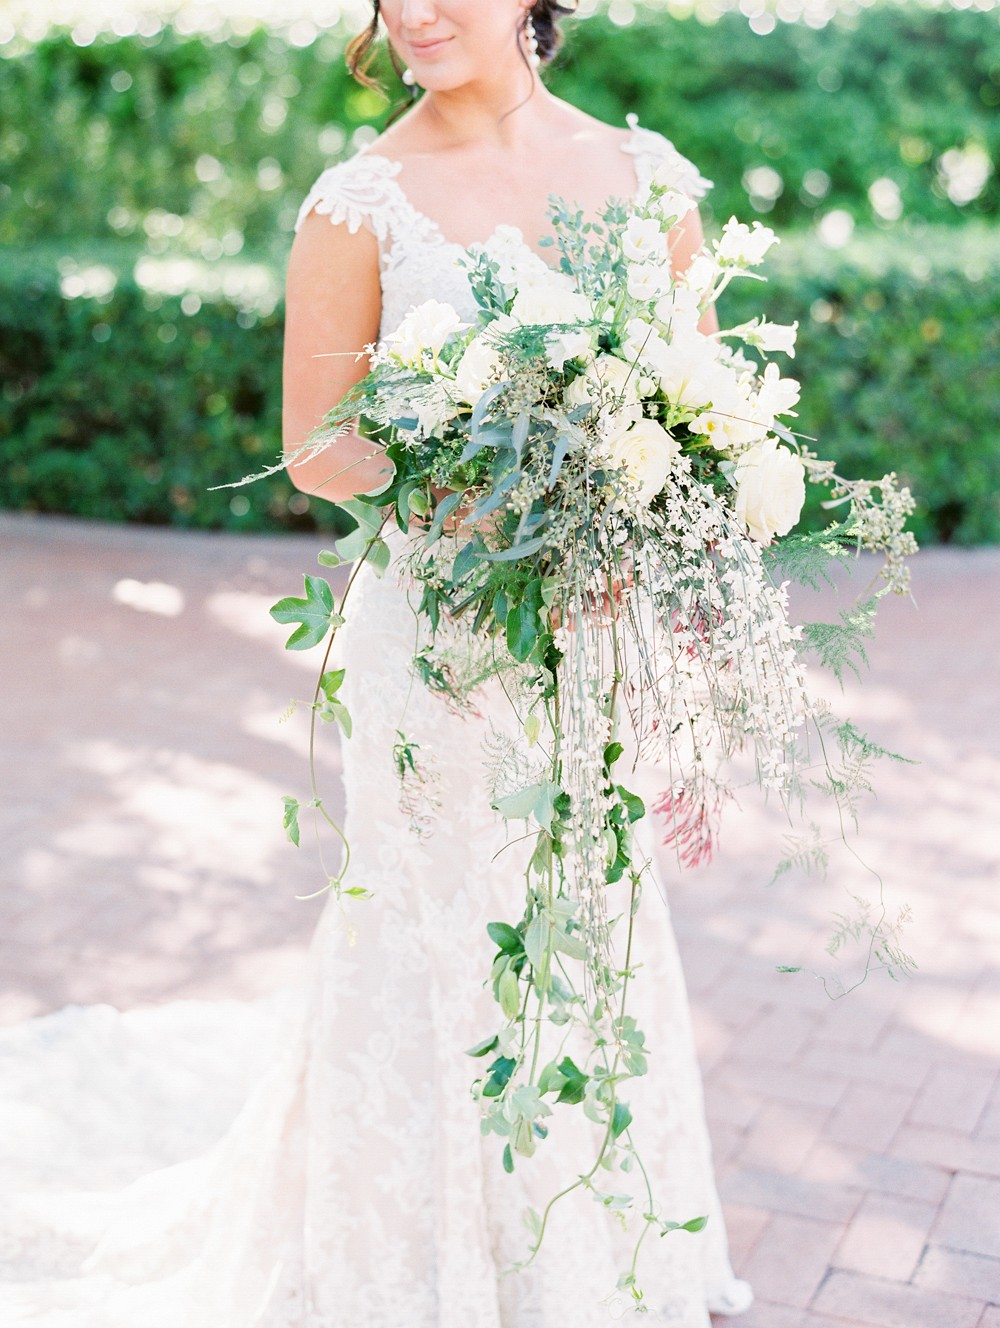 Krystina and John's Elegant Arizona Wedding